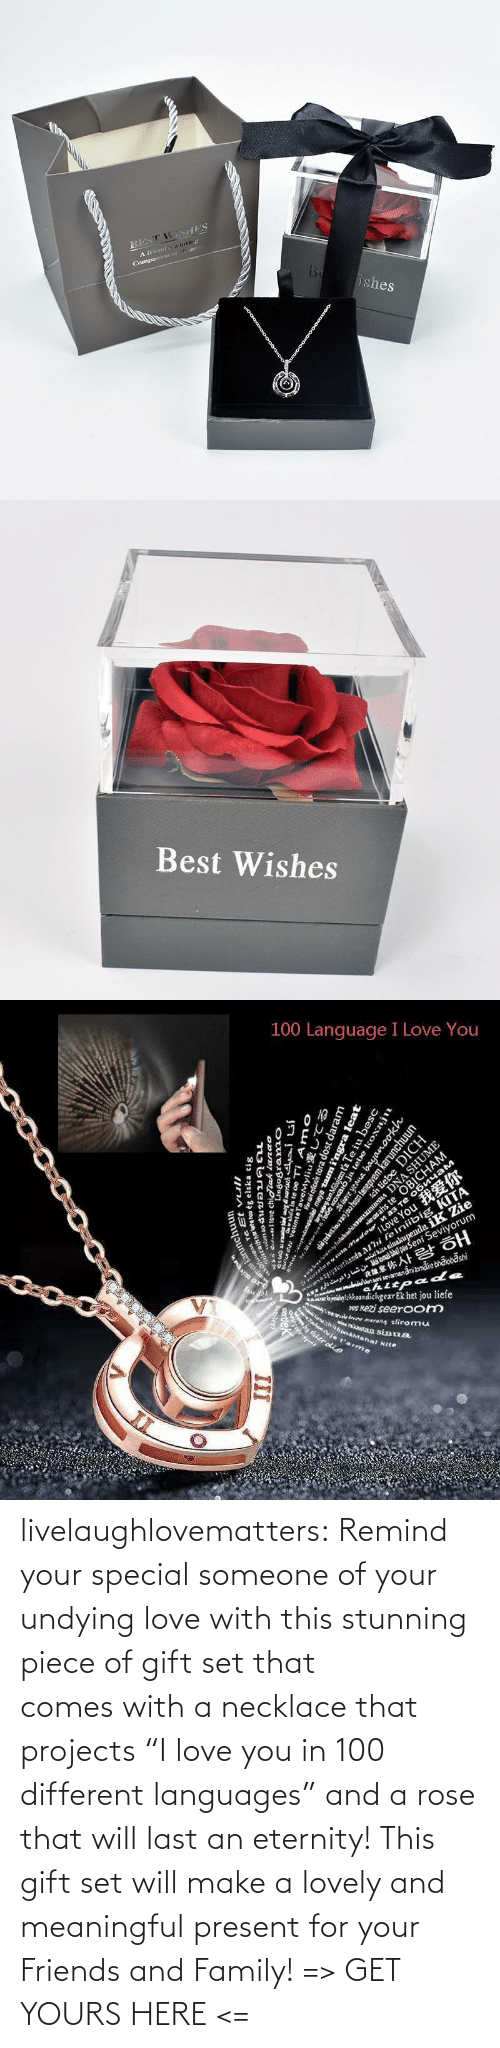 "www: livelaughlovematters:  Remind your special someone of your undying love with this stunning piece of gift set that comes with a necklace that projects ""I love you in 100 different languages"" and a rose that will last an eternity! This gift set will make a lovely and meaningful present for your Friends and Family! => GET YOURS HERE <="